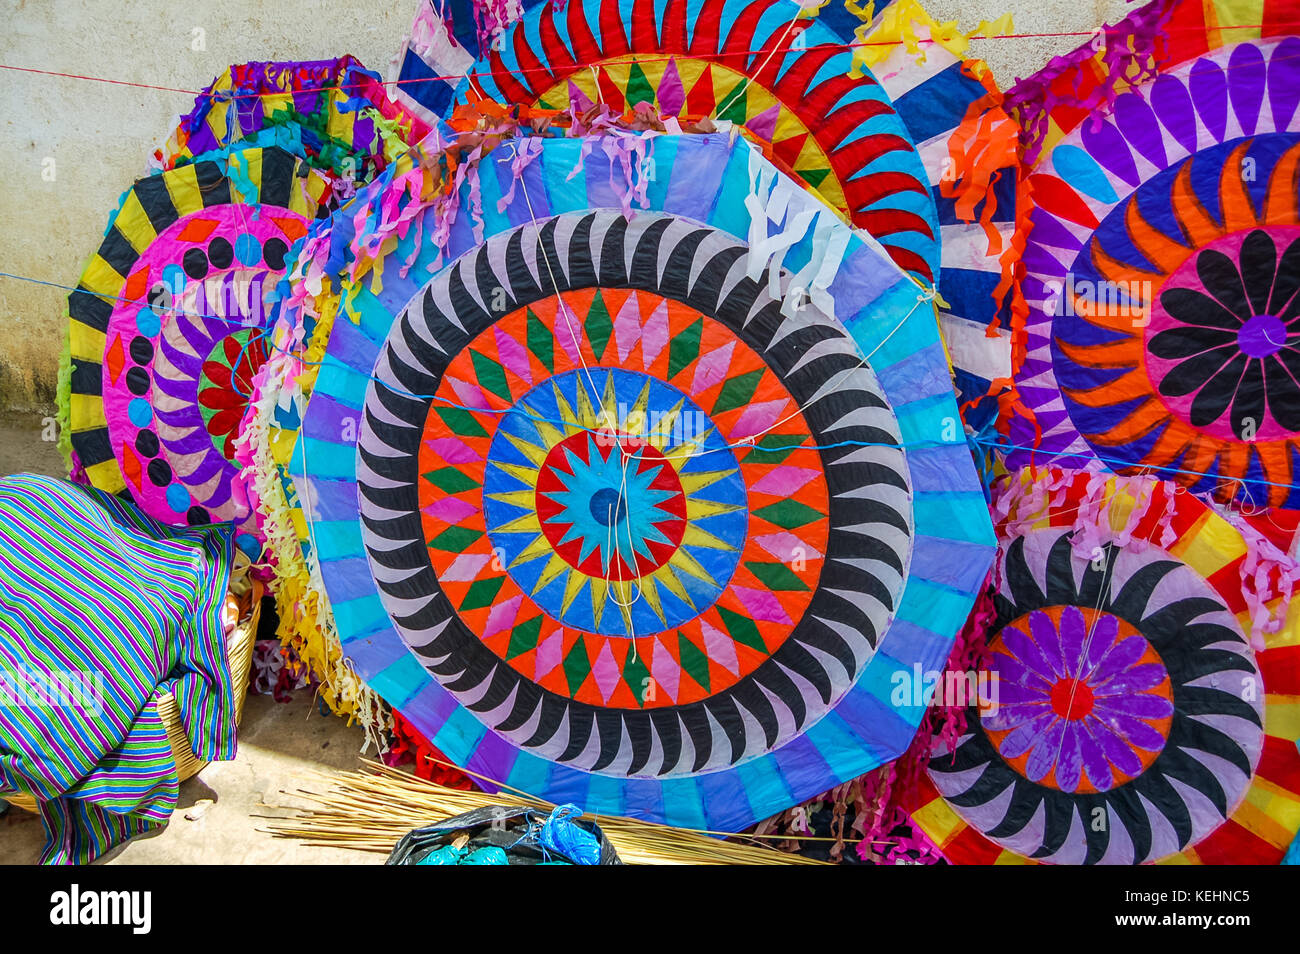 Handmade kites for sale on street on All Saints' Day in Santiago Sacatepequez, Guatemala, Central America - Stock Image